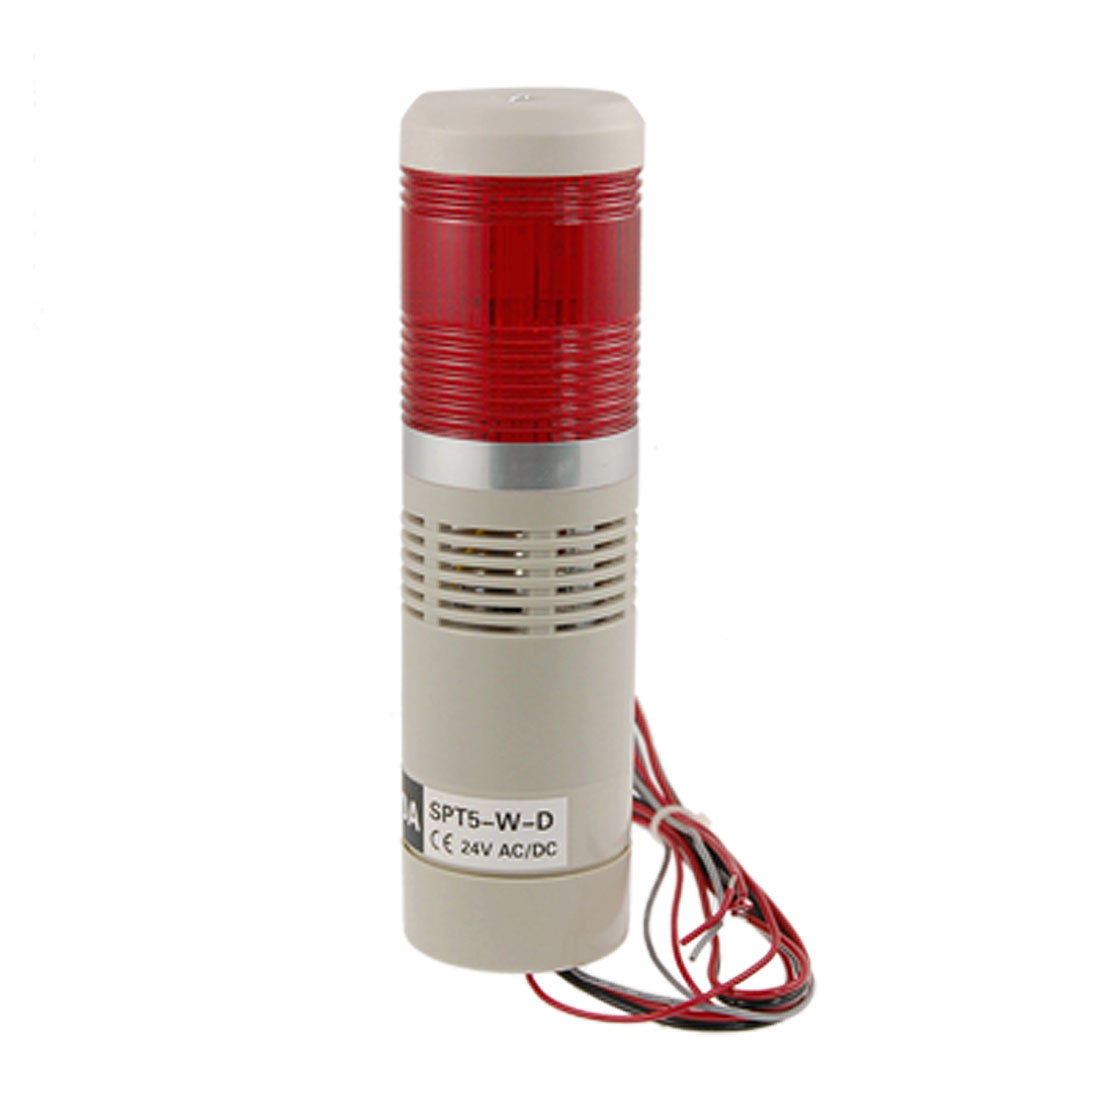 AC DC 24V Industrial Tower Signal Safety Light Red LED Alarm Lamp 90dB